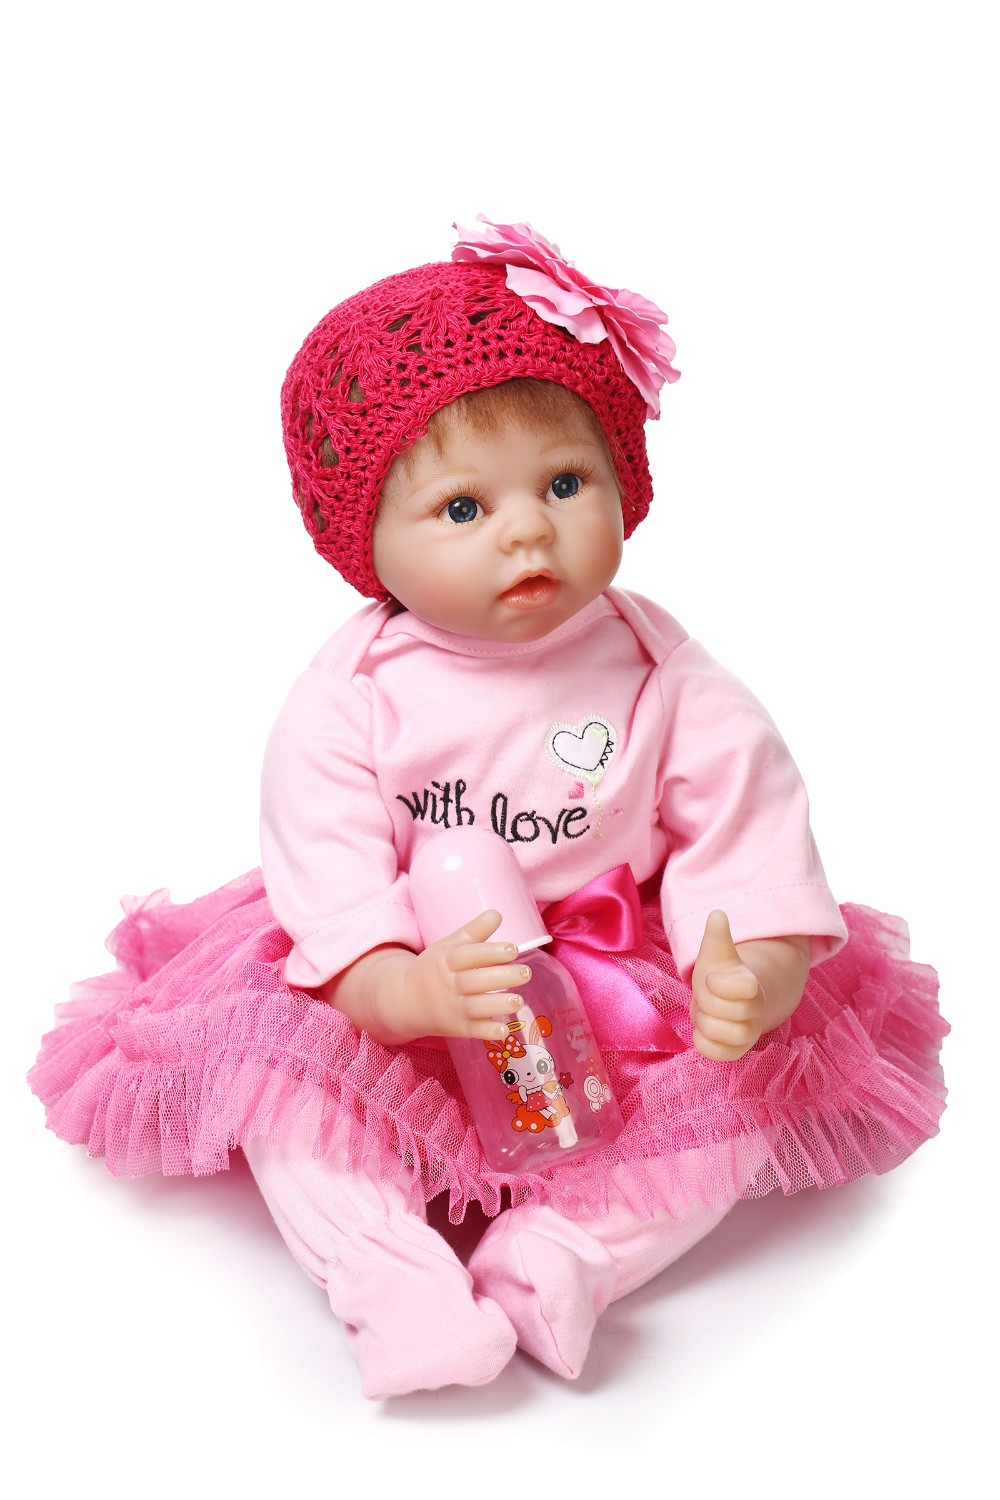 NPK  22 DOLL 55 cm Handmade Doll Reborn Lifelike Soft Silicone Reborn Baby Dolls For Girls Kids Birthday Gifts Russia DeliveryNPK  22 DOLL 55 cm Handmade Doll Reborn Lifelike Soft Silicone Reborn Baby Dolls For Girls Kids Birthday Gifts Russia Delivery